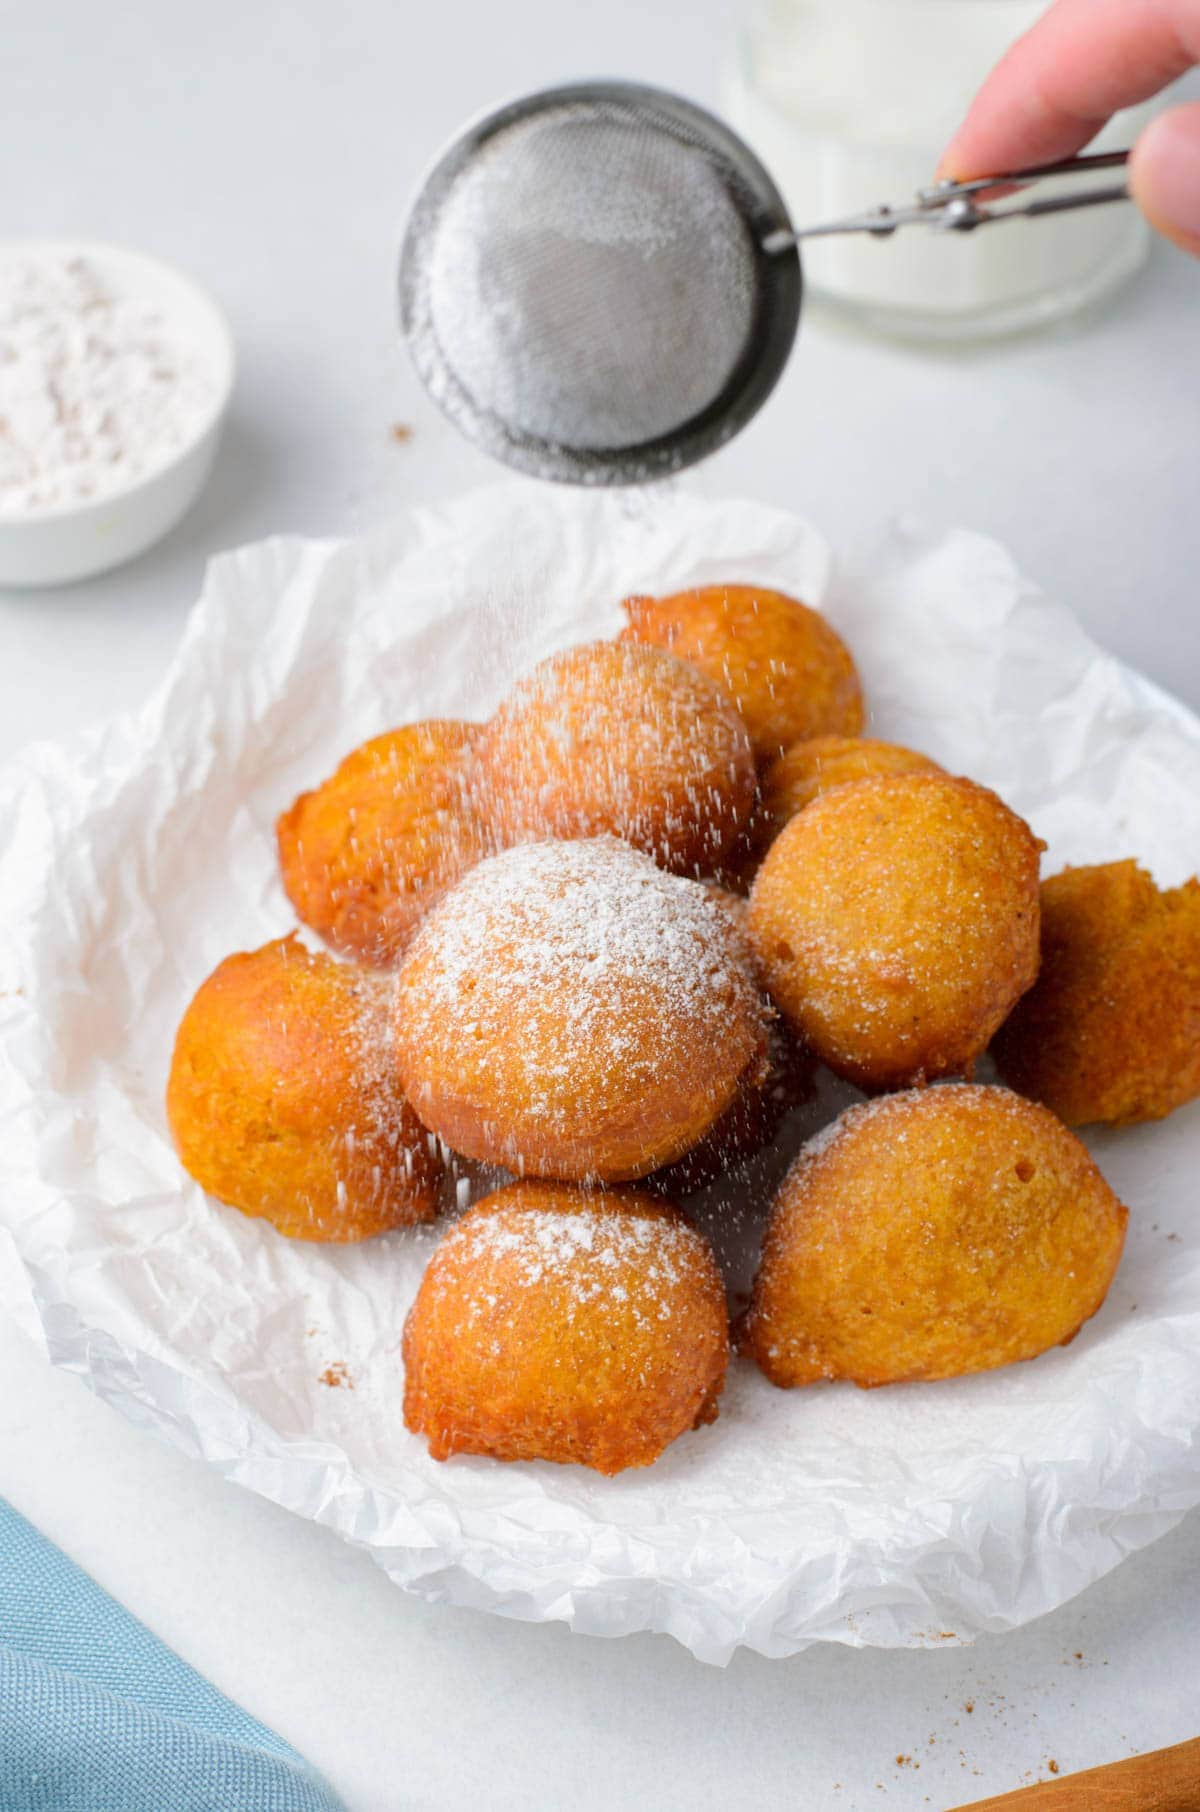 powdered sugar shaker over the fritters